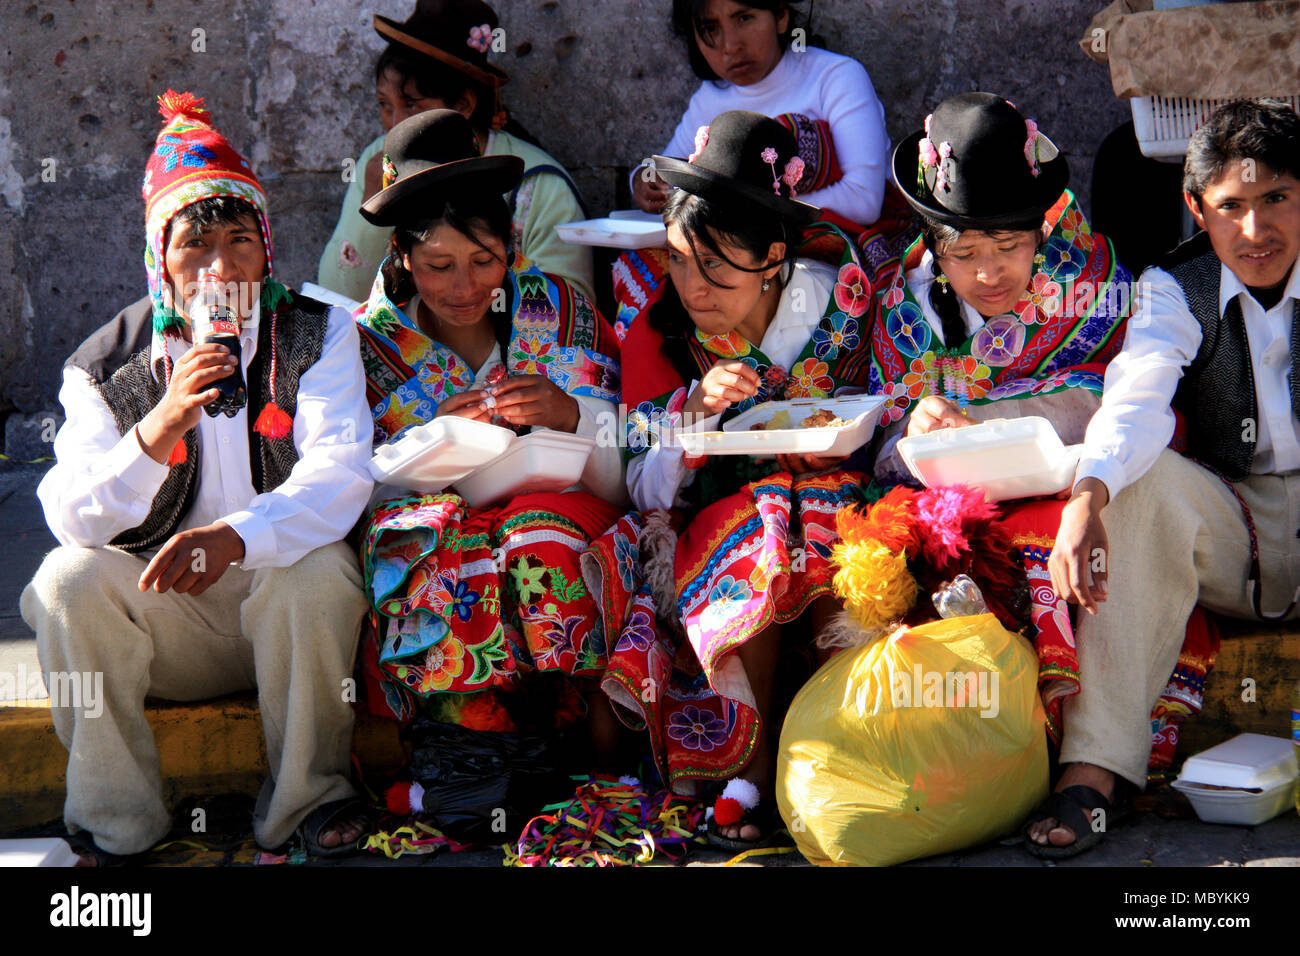 Traditionally dressed Peruvian Teenagers are sitting on the Side of the Street and eating, drinking and enjoying a Folklore Festival in Arequipa, Peru - Stock Image